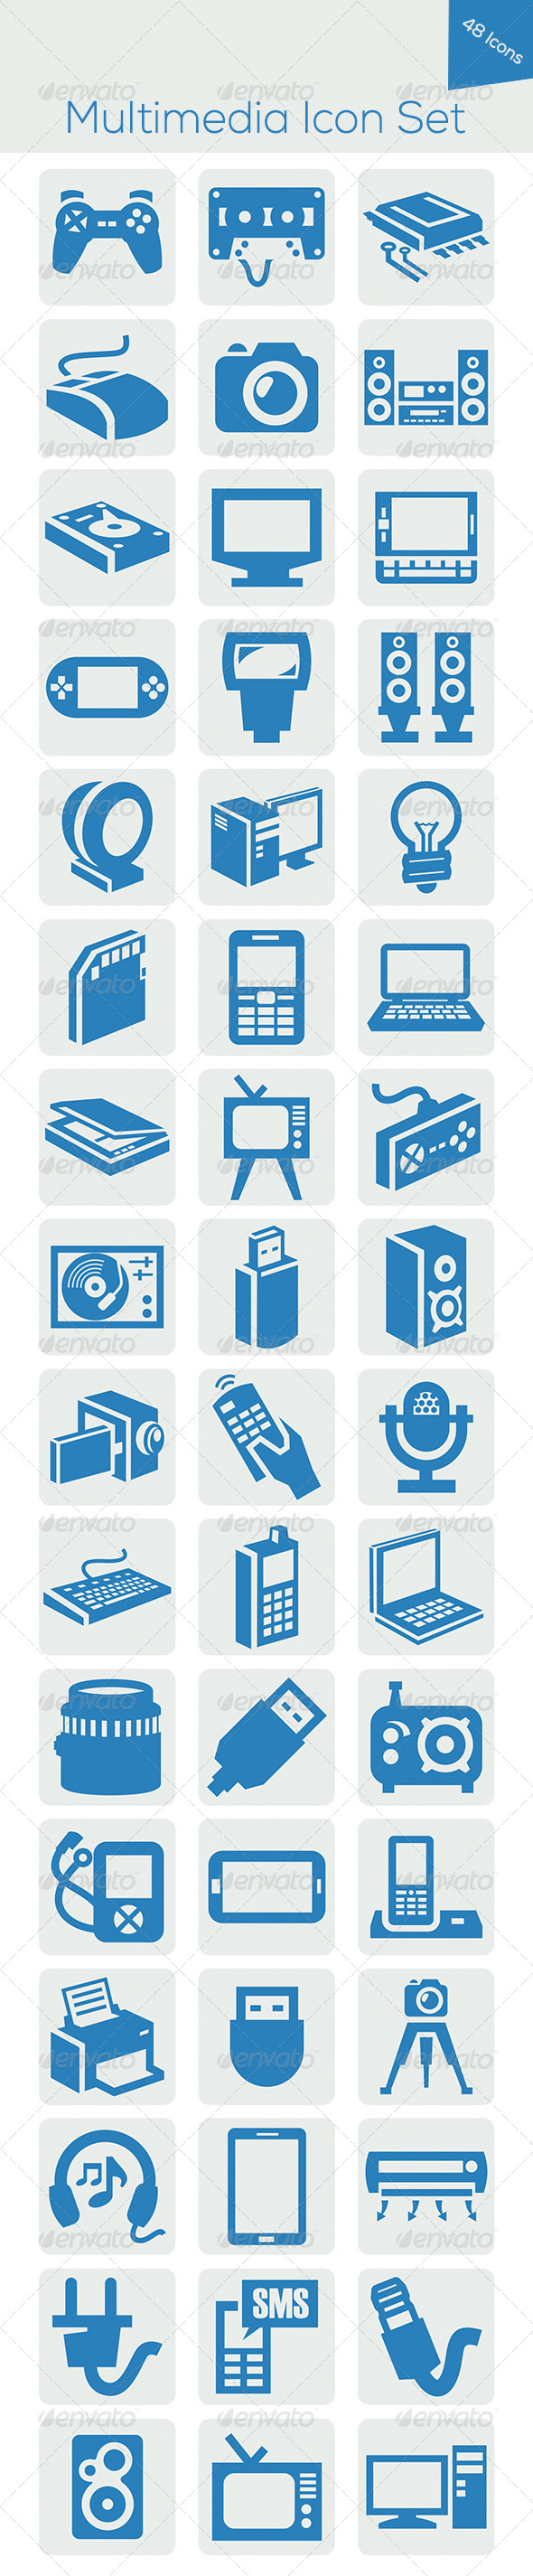 Multimedia Icon Set - Media Icons